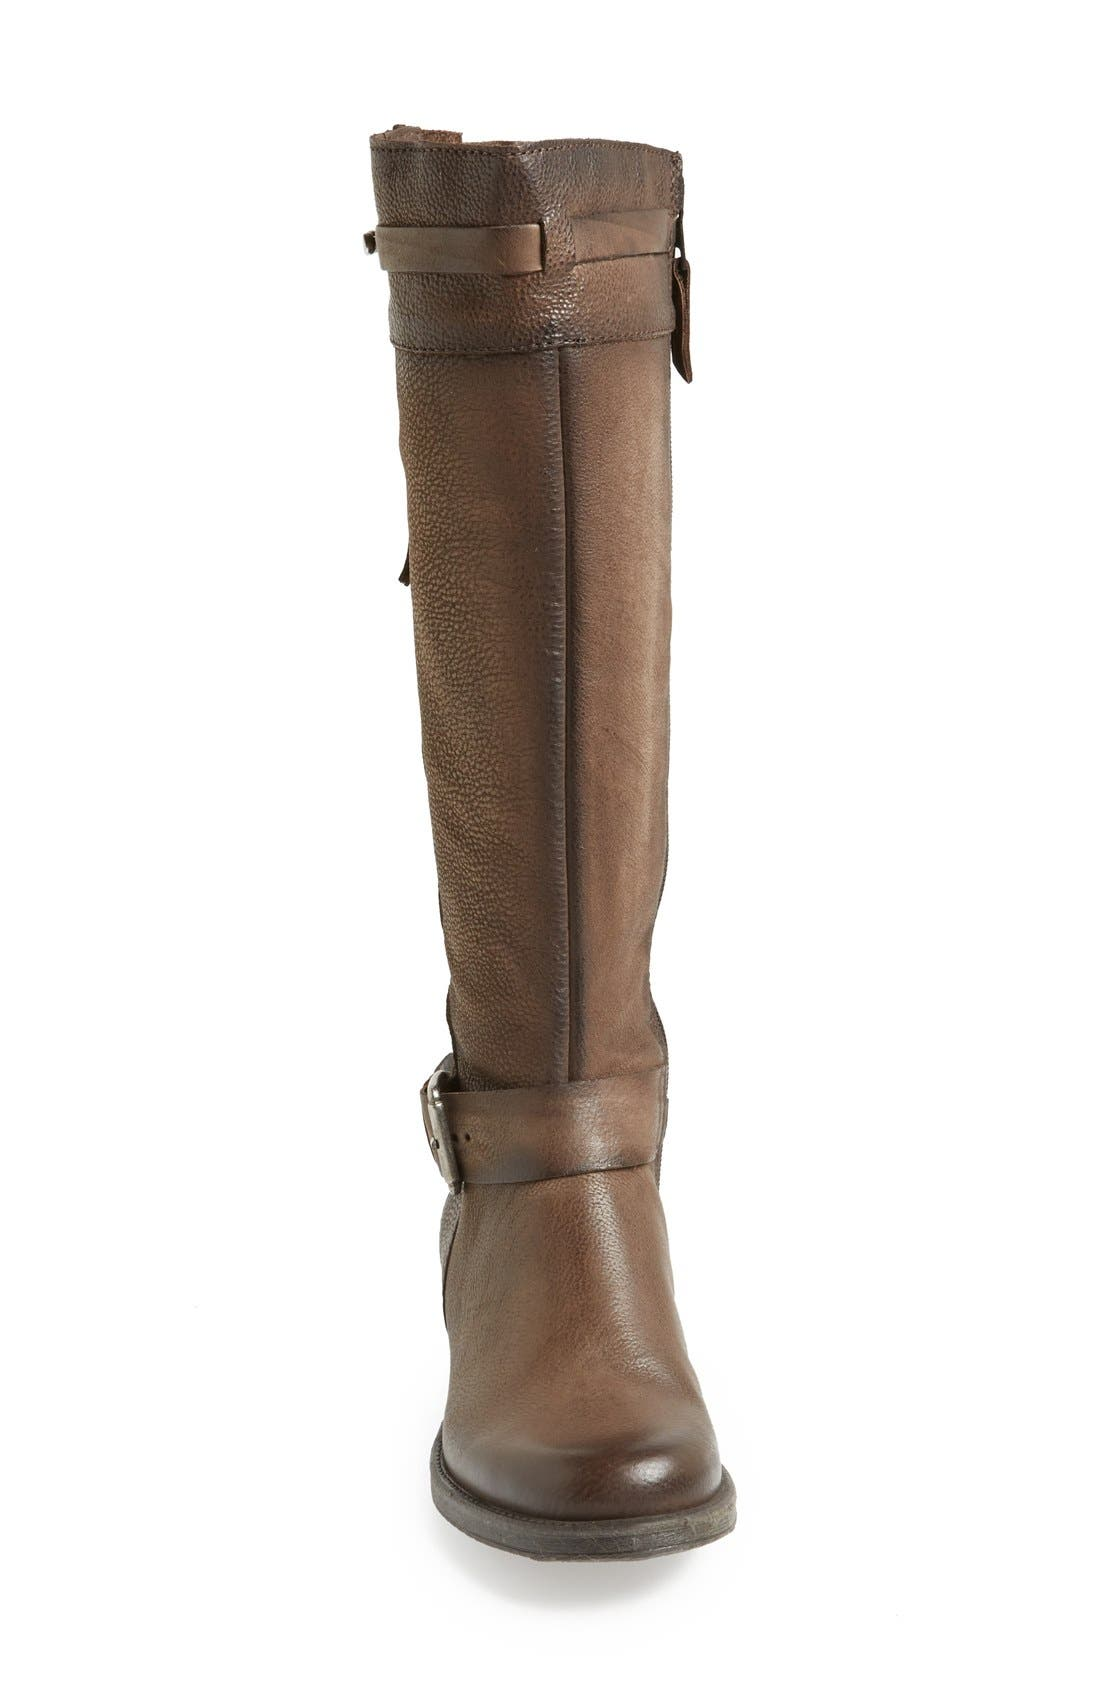 Alternate Image 3  - Miz Mooz 'Nicola' Riding Boot (Women)